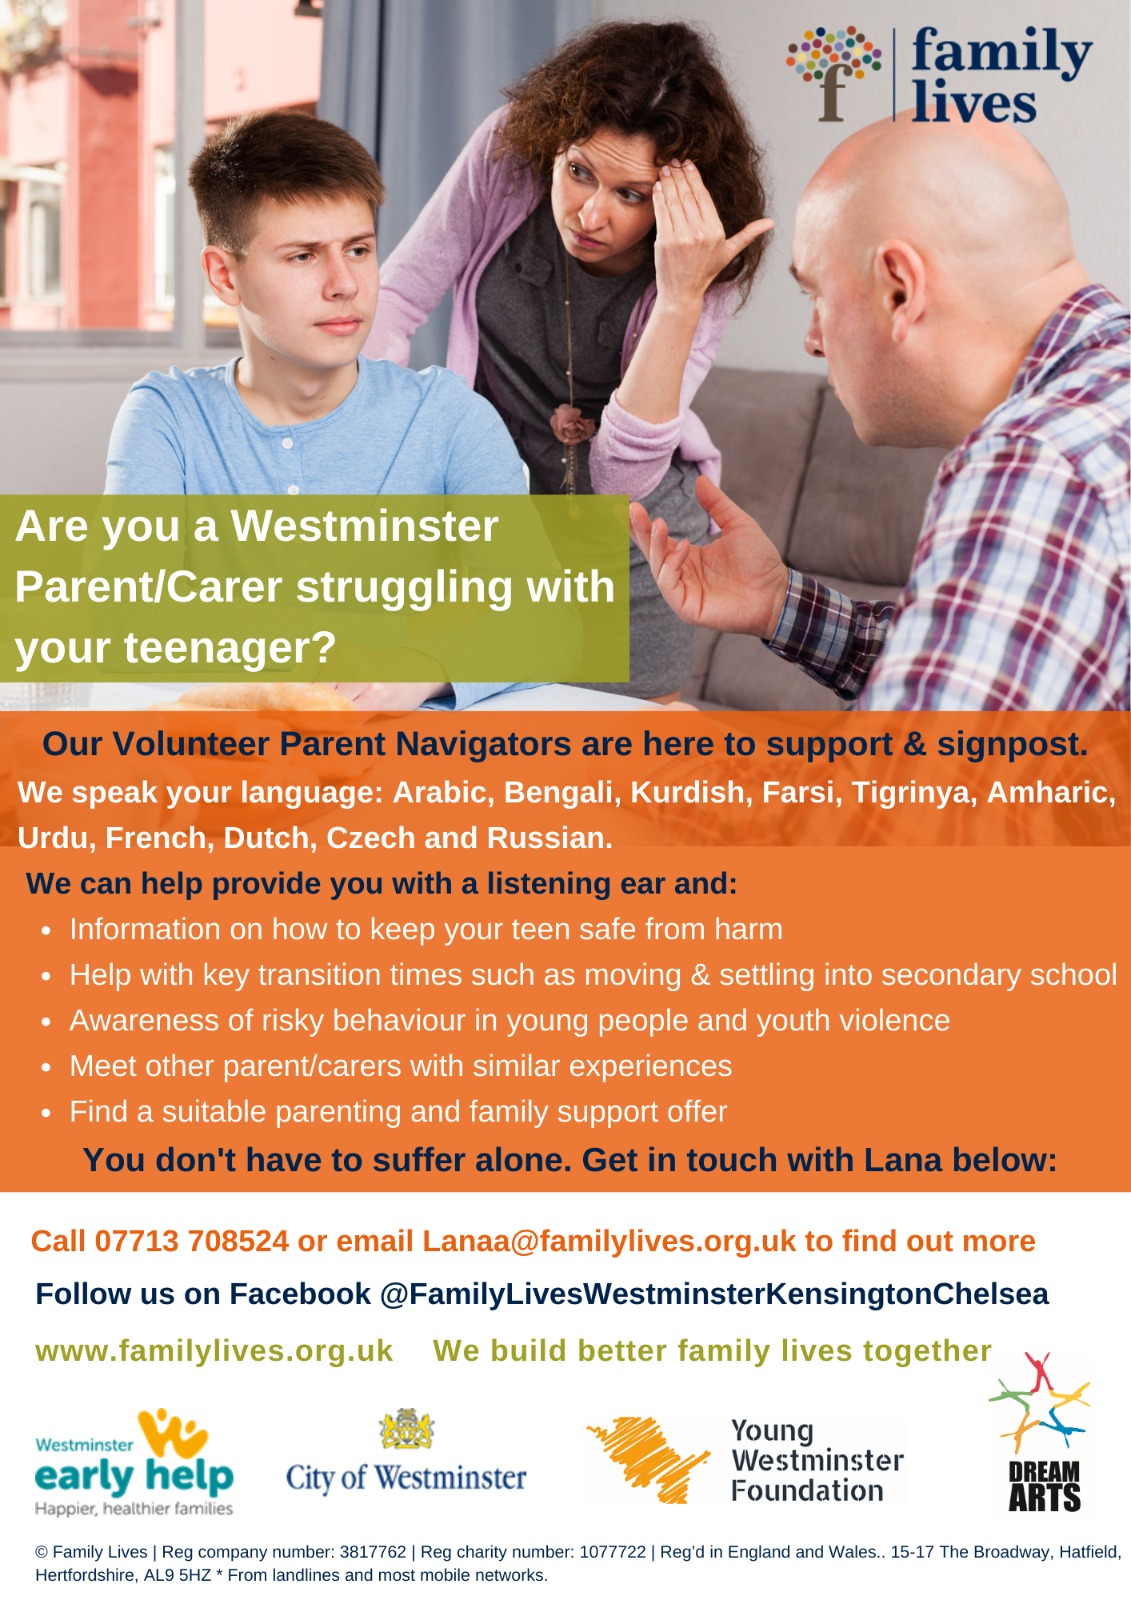 family lives  Are you a Westminster Parent/Carer struggling with your teenager?  Our Volunteer Parent Navigators are here to support & signpost.  We speak your language: Arabic, Bengali, Kurdish, Farsi, Tigrinya, Amharic, Urdu, French, Dutch, Czech and Russian.   We can help provide you with a listening ear and:  Information on how to keep your teen sale from harm Help with key transition times such as moving & settling into secondary school Awareness of risky behaviour in young people and youth violence Meet other parent/carers with similar experiences Find a suitable parenting and family support offer  You don't have to suffer alone. Get in touch with Lana below:  Call 07713 708 524 or email Lanaa@familylives.org.uk to find out more  Follow us on Facebook @FamilyLivesWestminsterKensingtonChelsea  www.familylives.org.uk - We build better family lives together